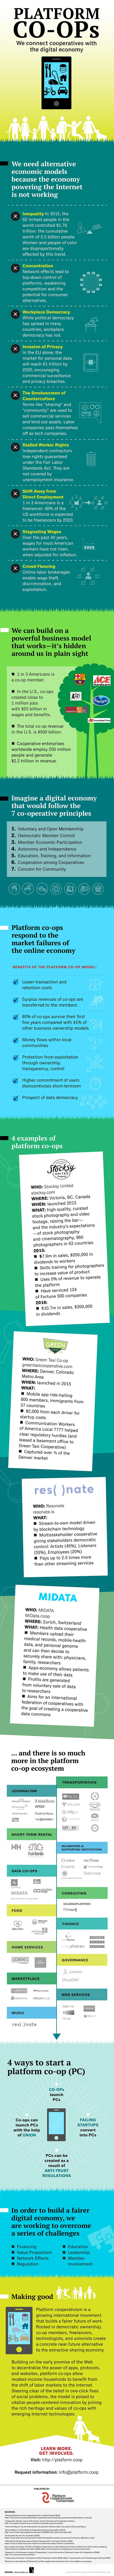 Platform Coops: an infographic connecting cooperatives with